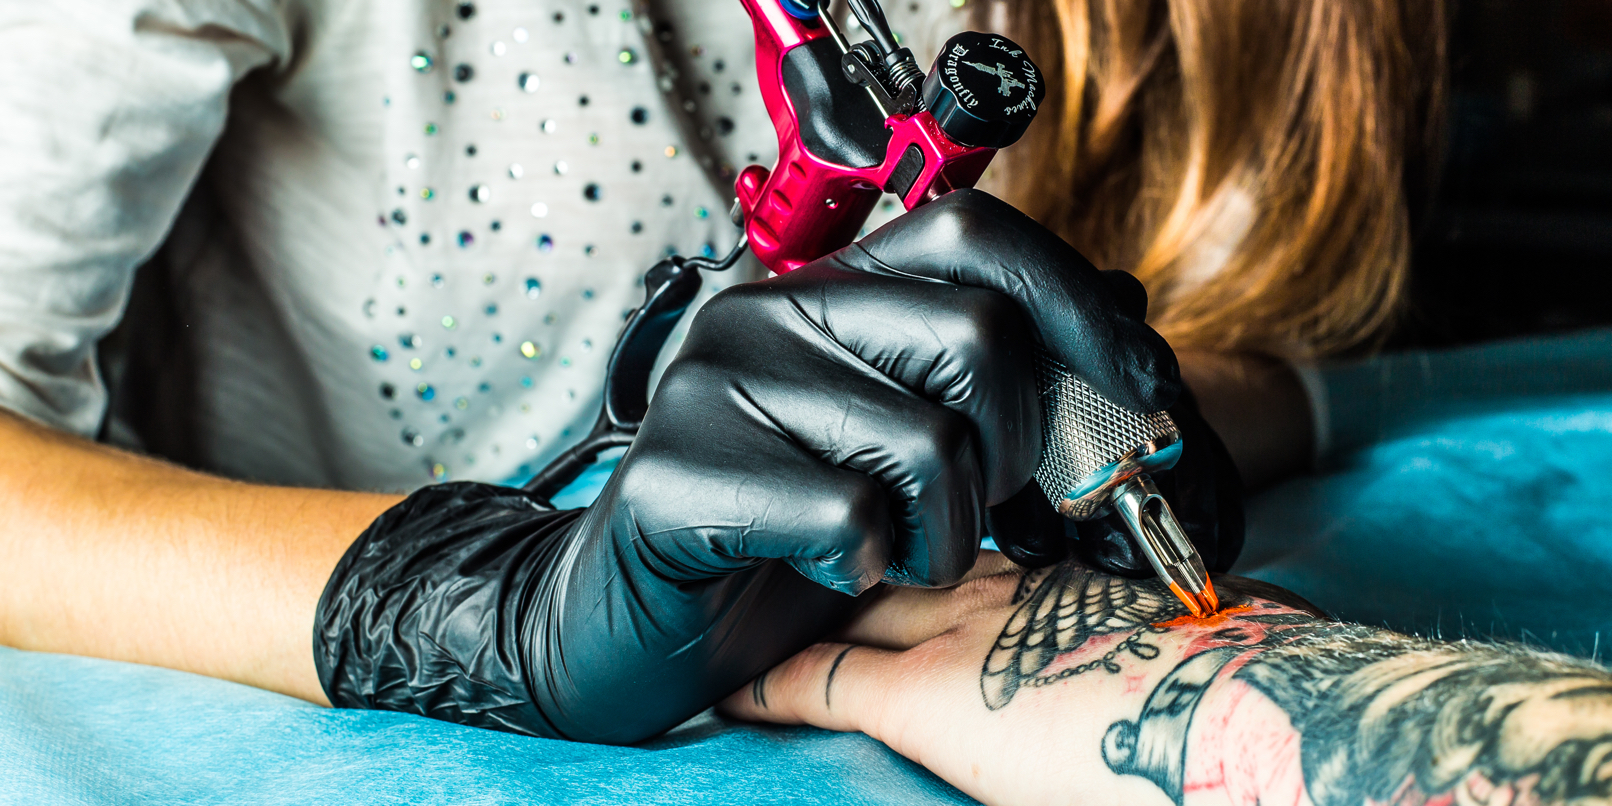 FBI is developing software to sort, track and profile citizens by their tattoos